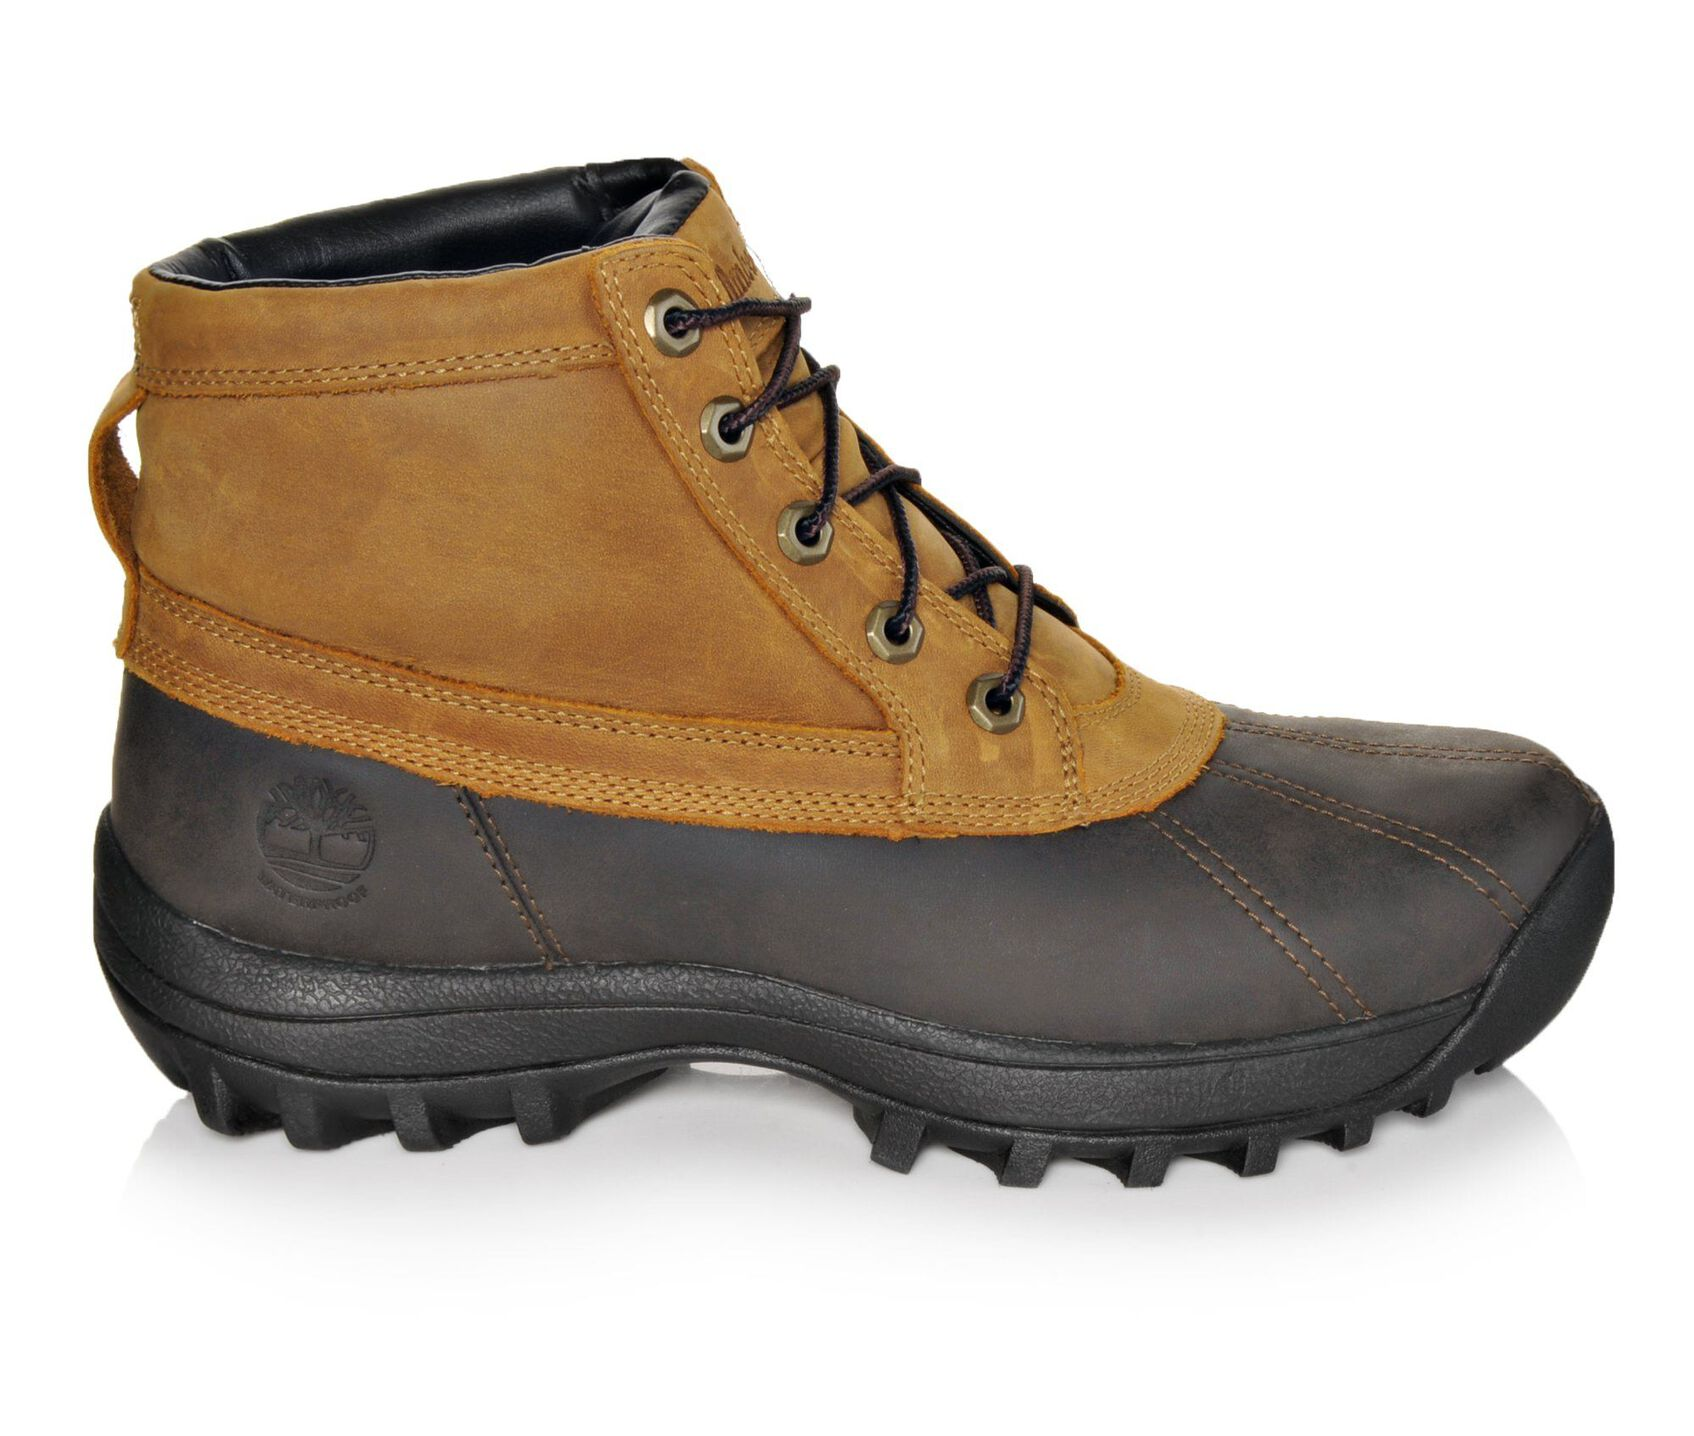 waterproof chat Choose from a wide variety of men's hunting boots, including insulated and uninsulated hunting boots, as well as waterproof rubber hunting boots and more shop today.